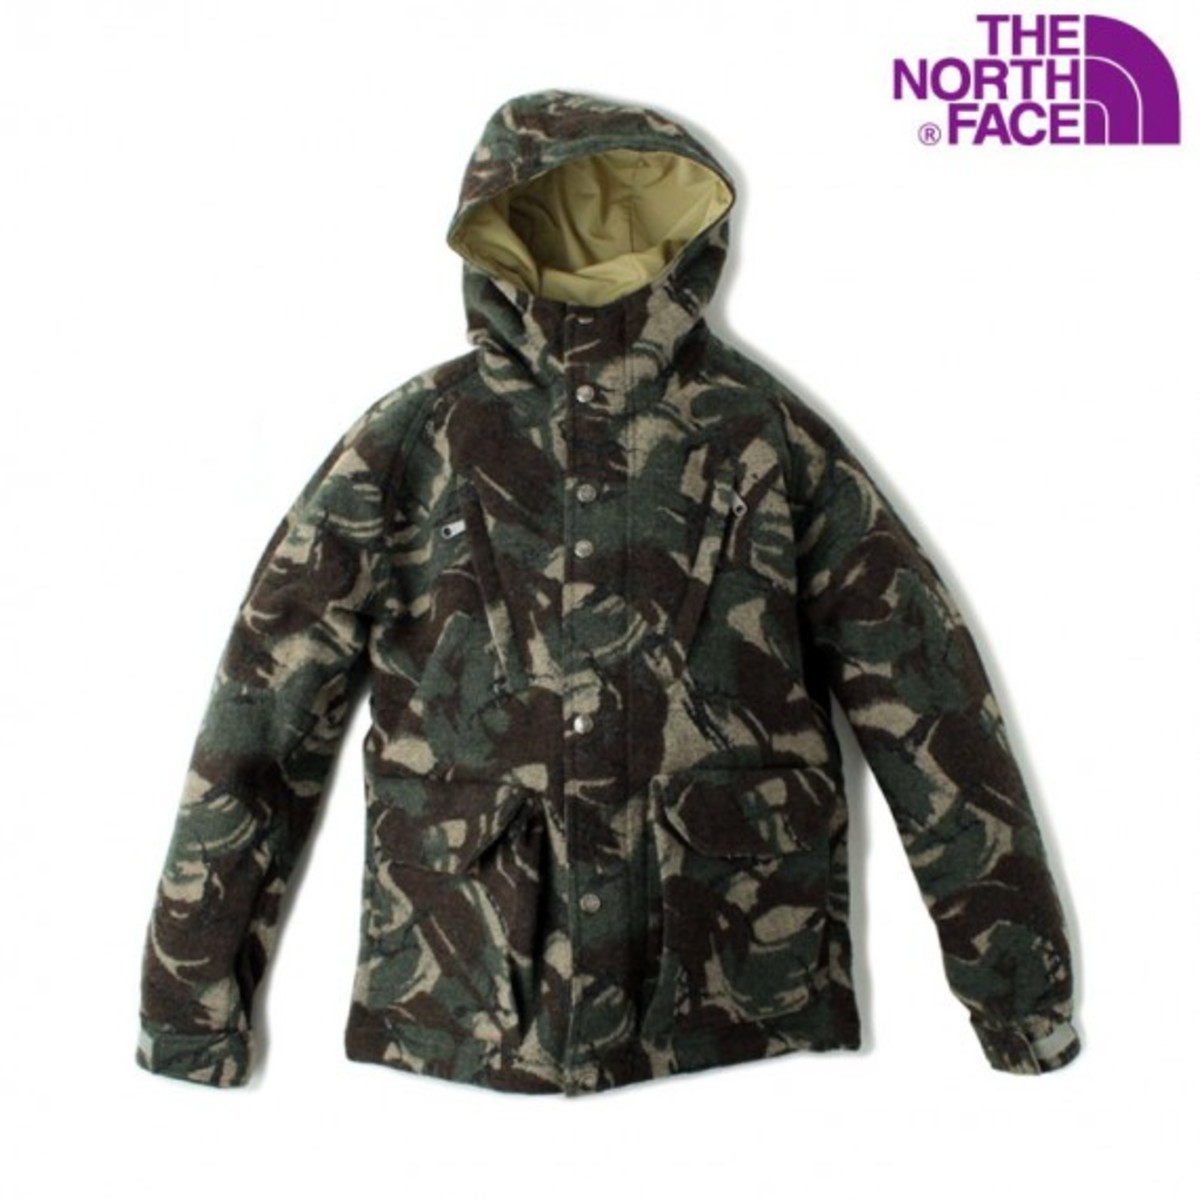 the-north-face-purple-label-wool-mountain-parka-01